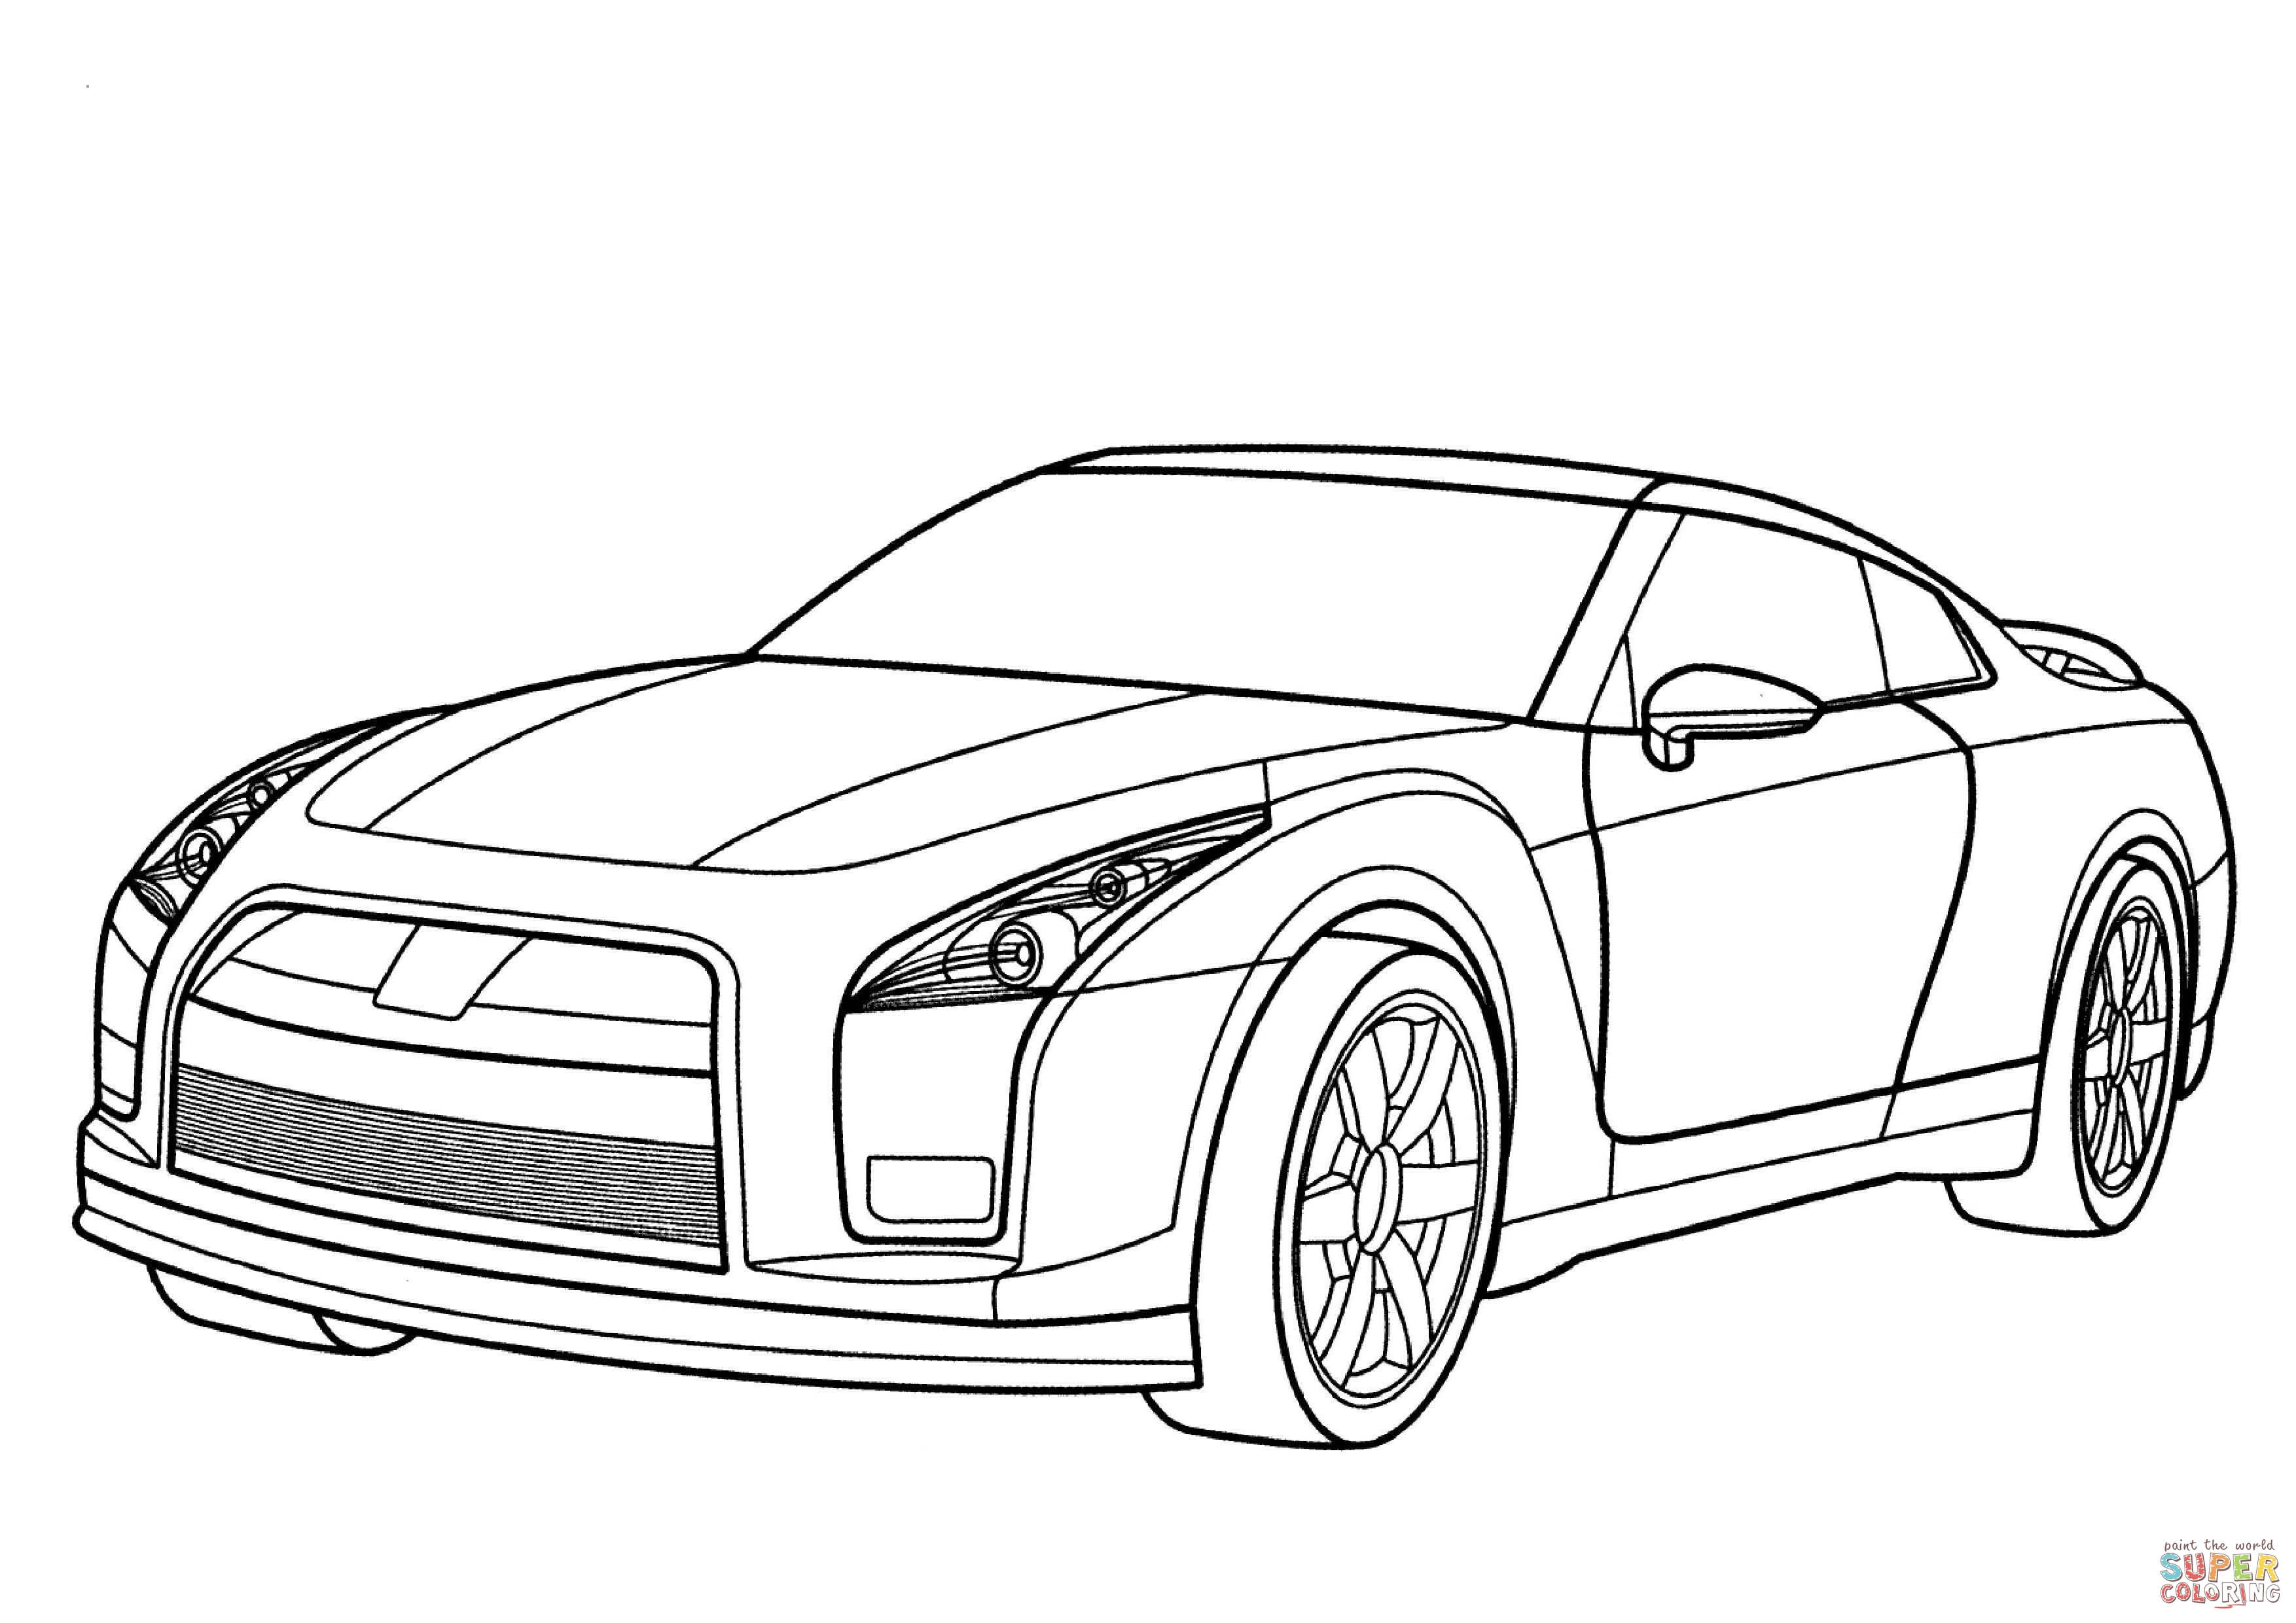 nissan gtr colouring pages nissan coloring pages coloring pages to download and print colouring nissan pages gtr